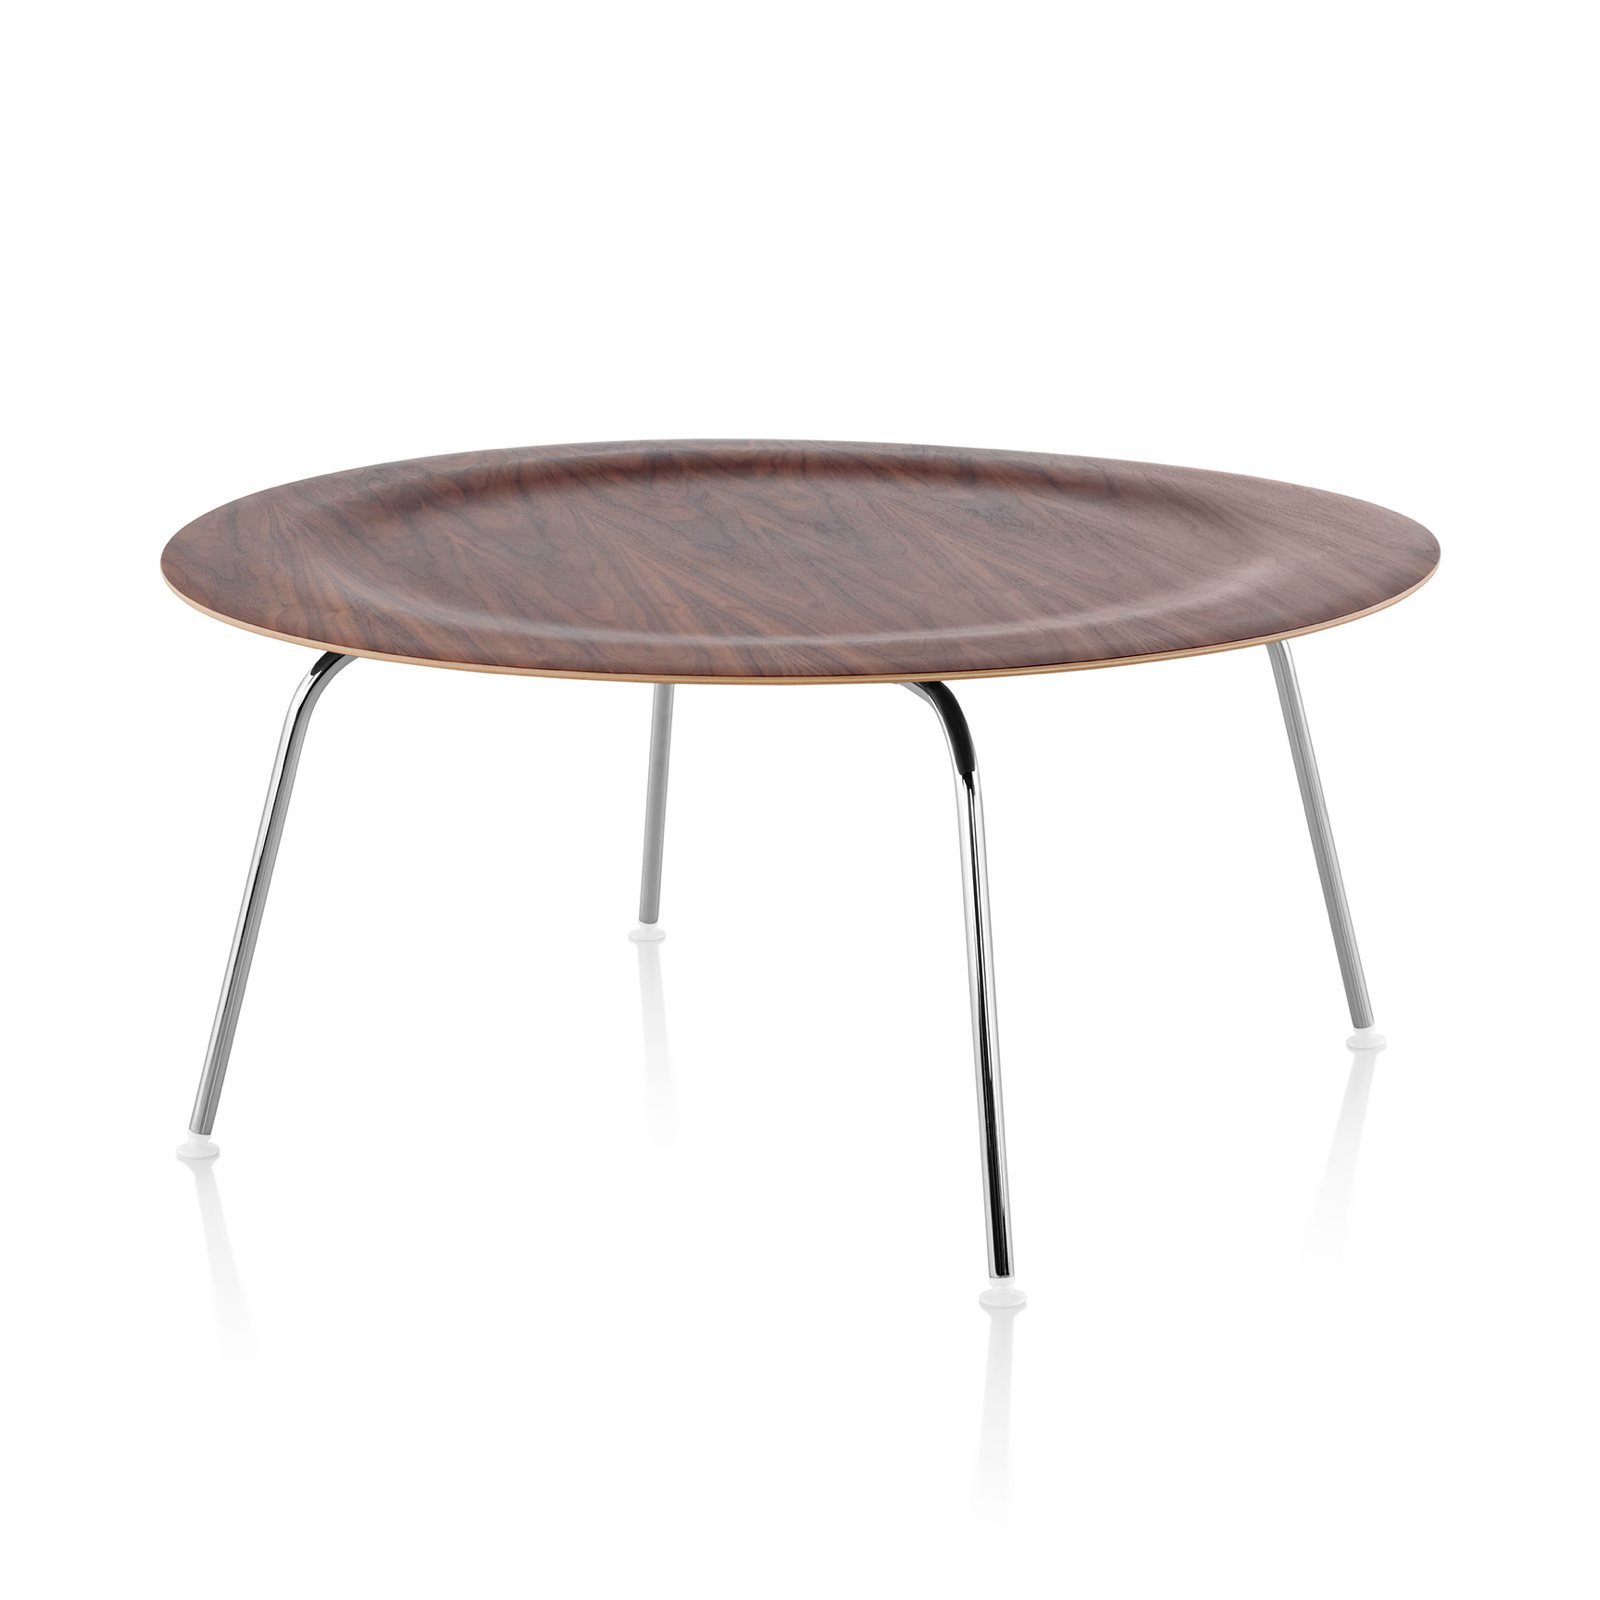 Eames Molded Plywood Coffee Table Metal Base by Charles & Ray